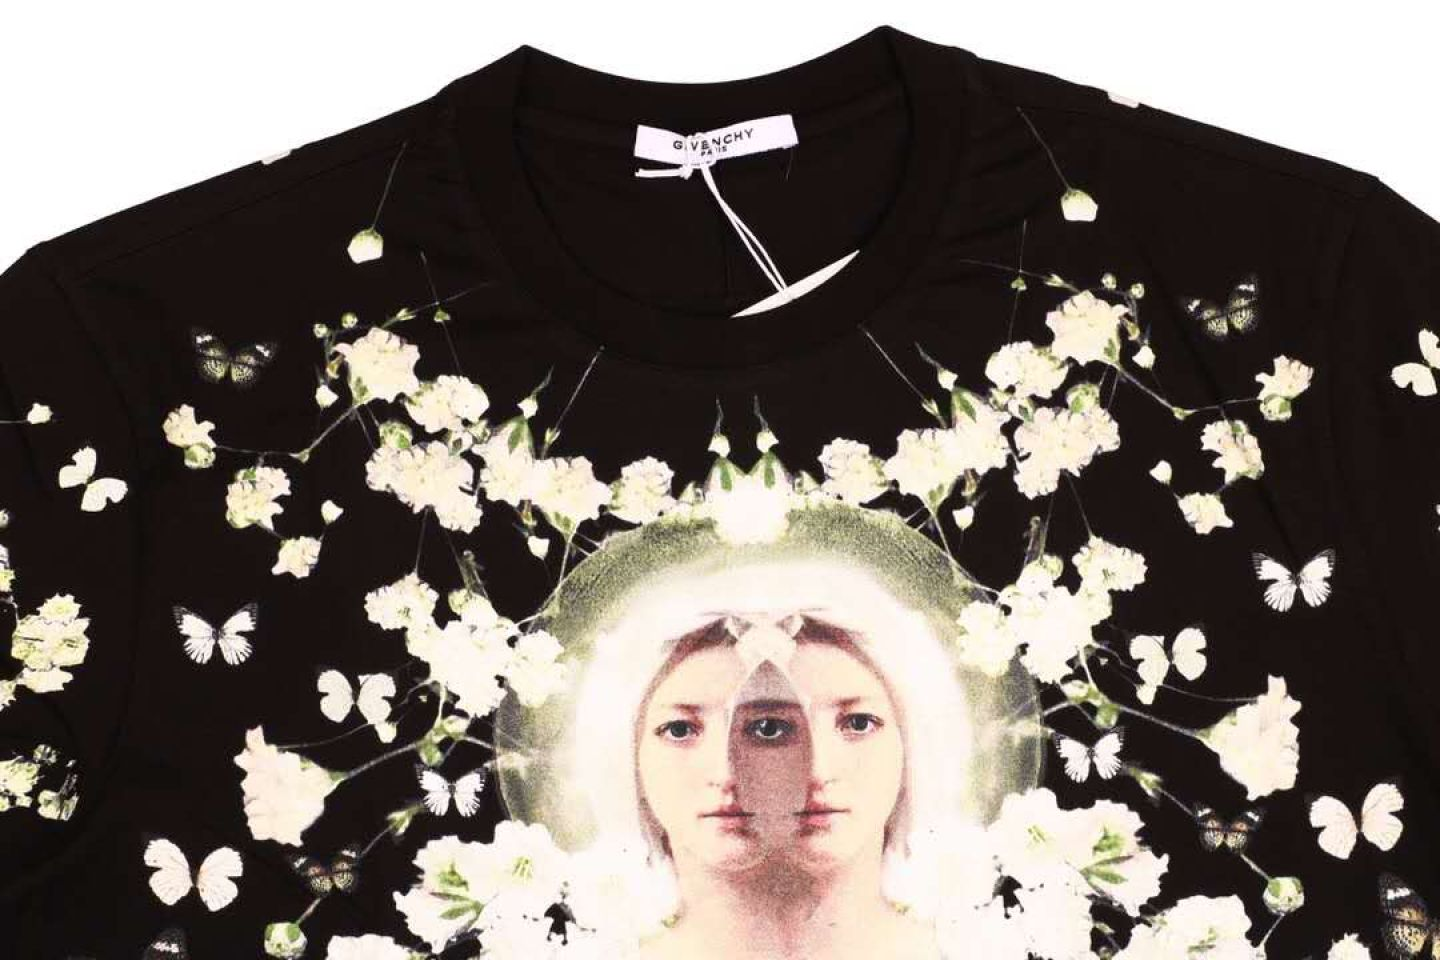 Shirt Givenchy classic Mother Maria short-sleeved T-shirt 2 givenchy_classic_mother_maria_short_sleeved_t_shirt__2